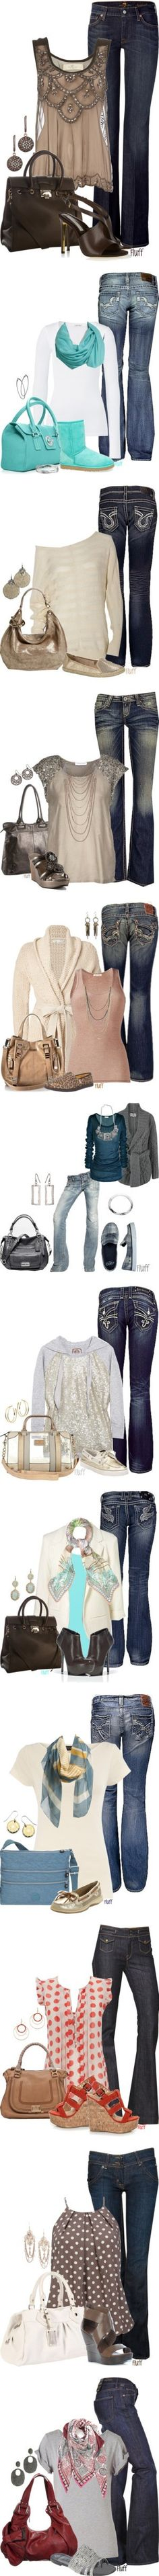 New Fall Looks: Denim & Shimmer - The Todd and Erin Favorite Five